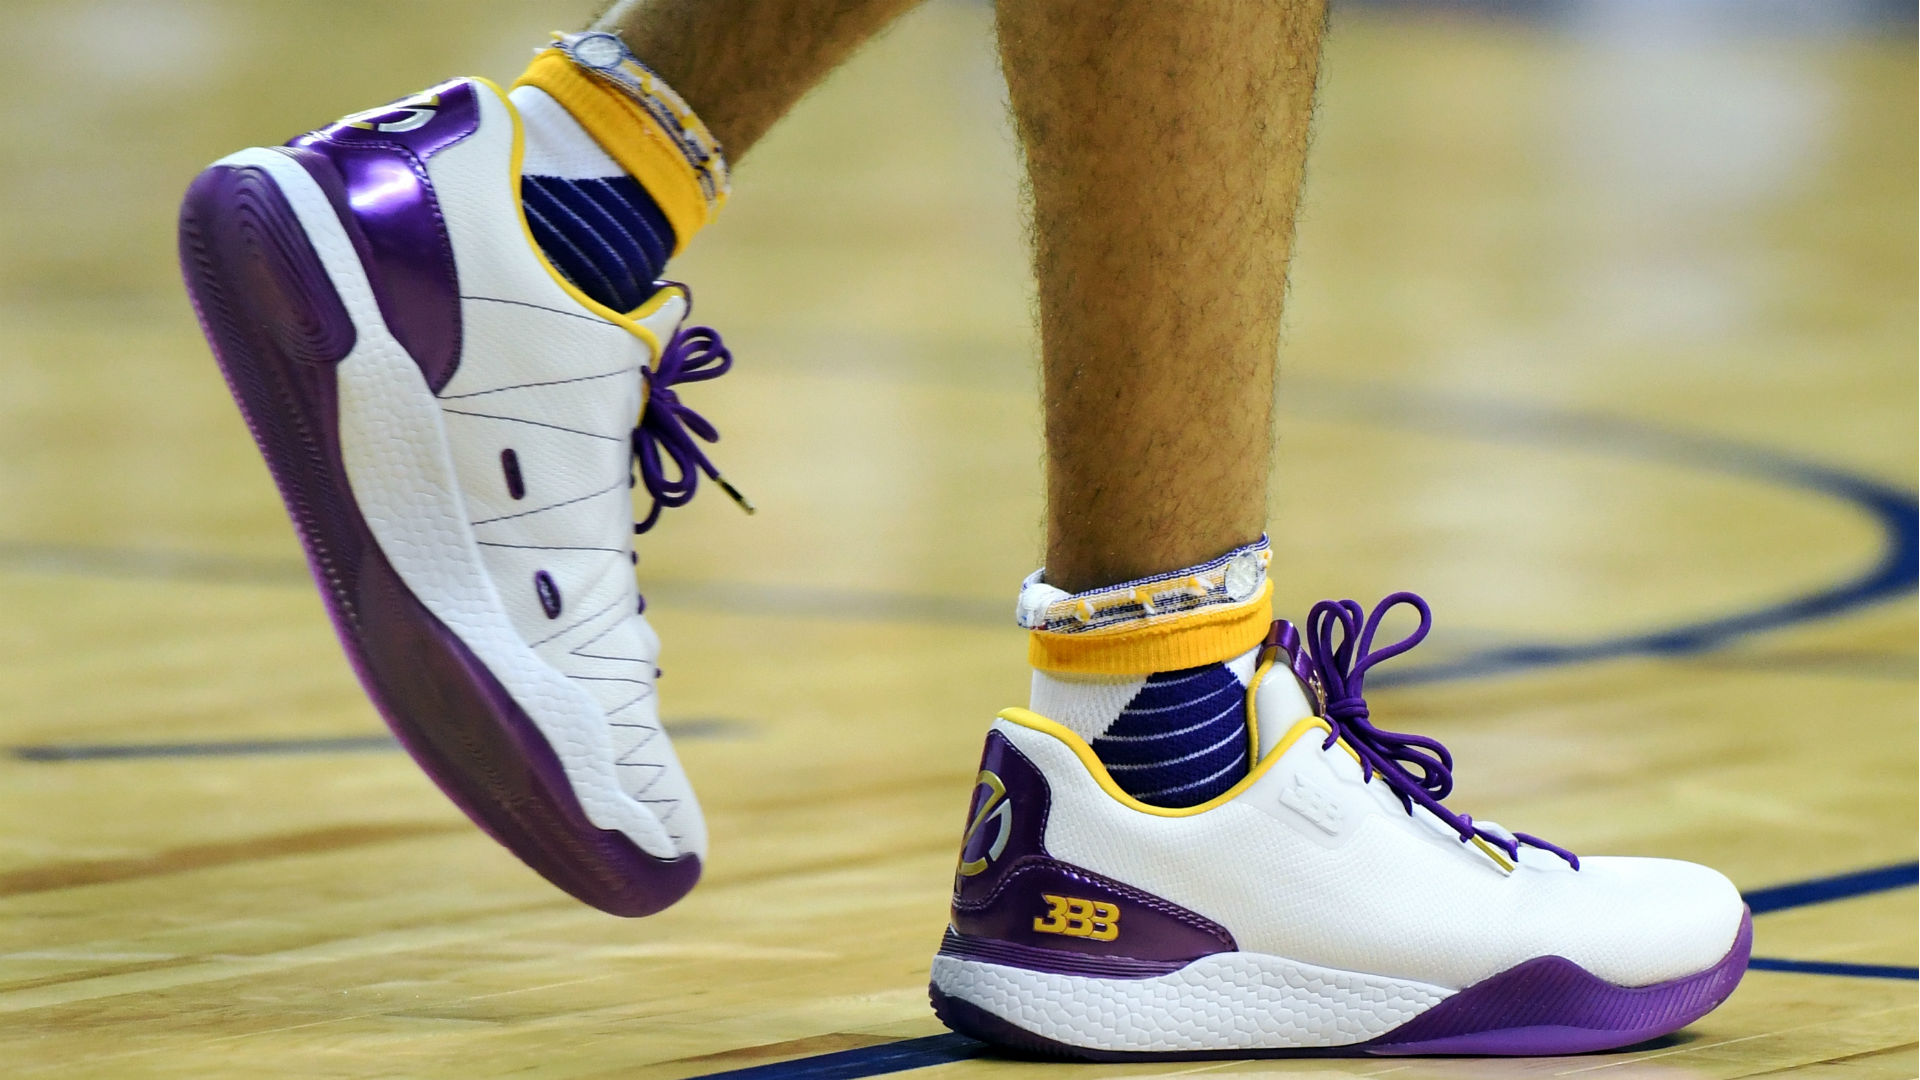 Lonzo Ball says his Big Baller Brand shoes fell apart every quarter